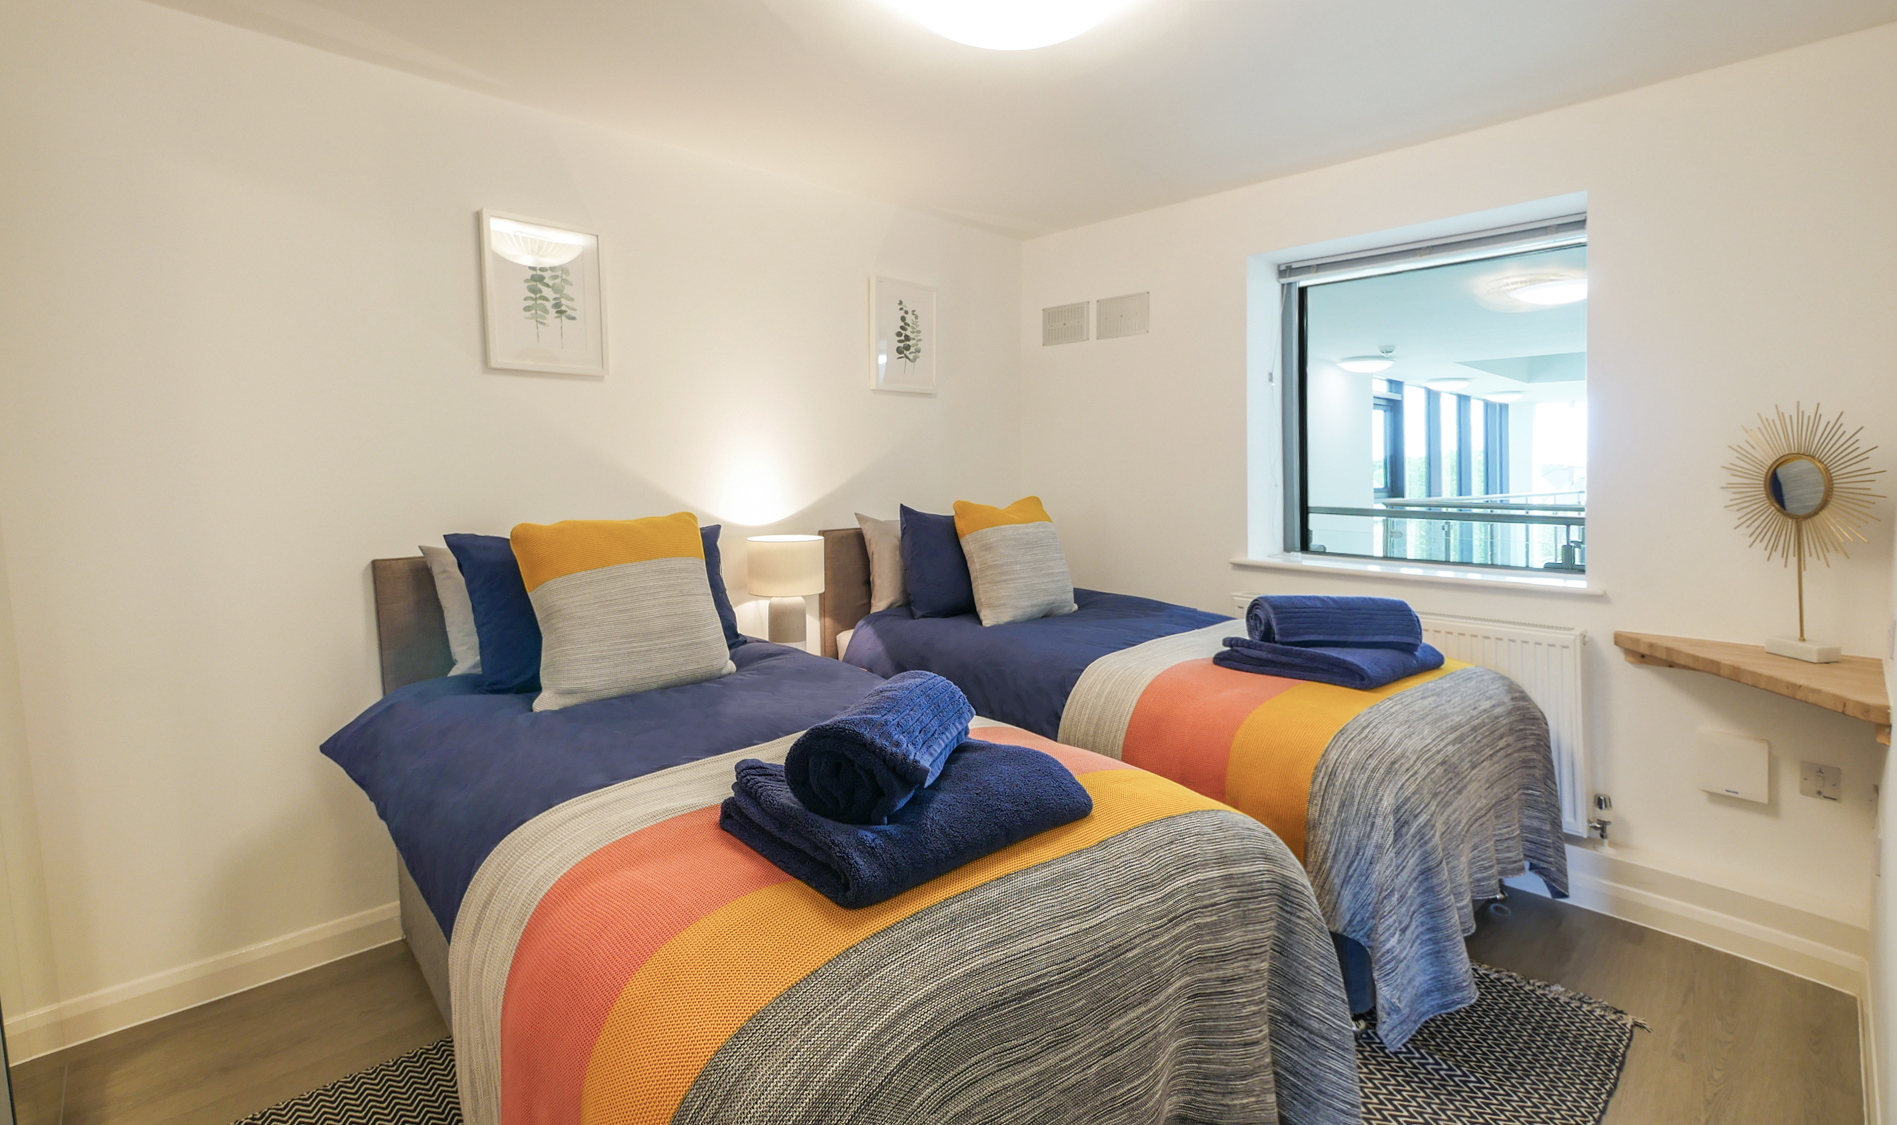 luxury accommodation in Alnwick for couples and pets, best boutique accommodation Northumberland 5 stars